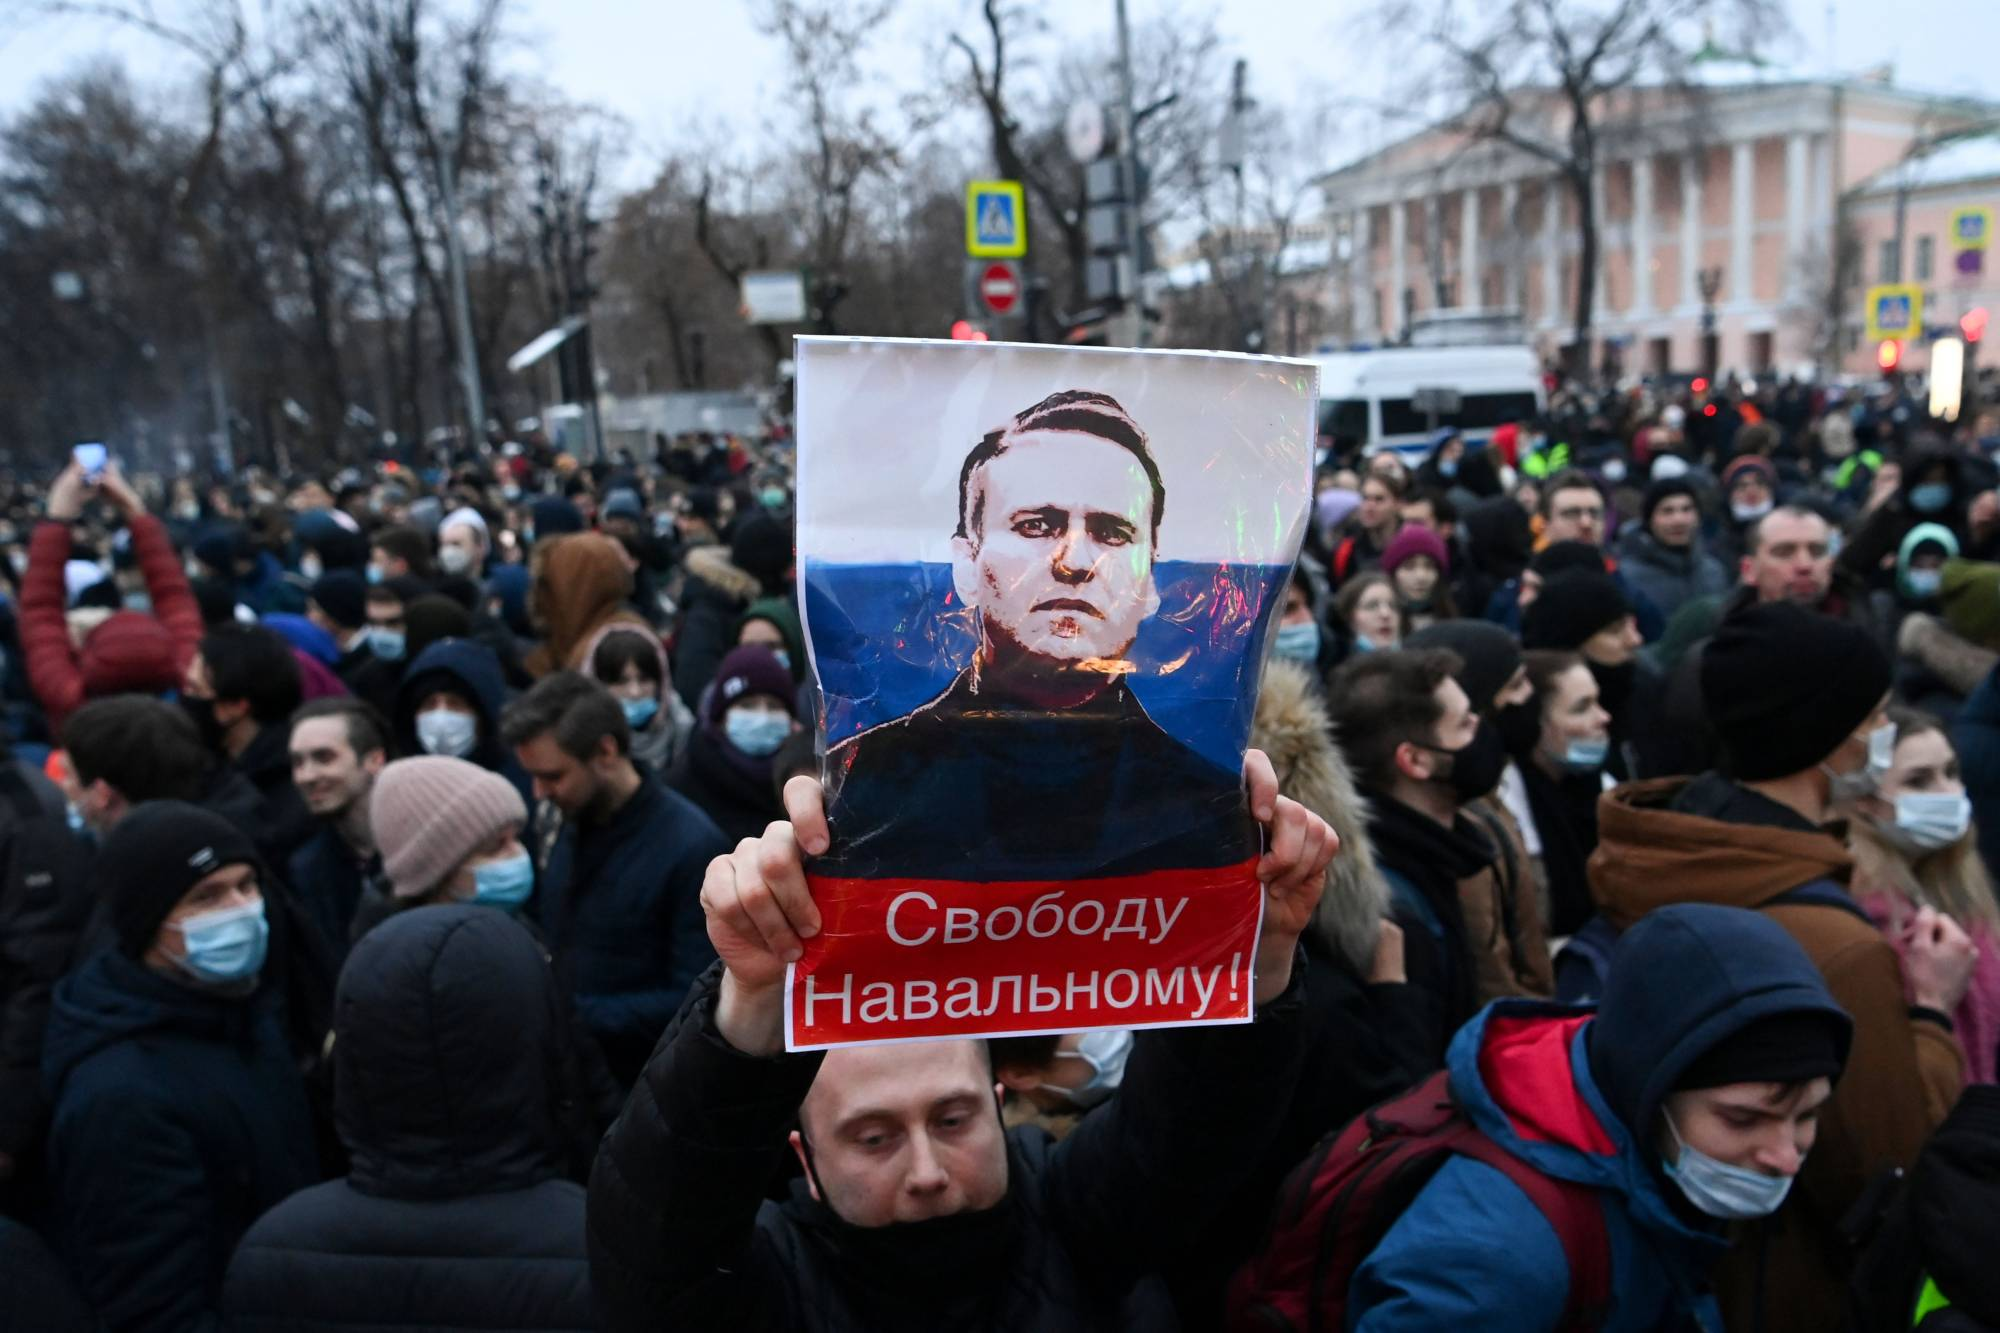 Protesters march in support of jailed opposition leader Alexei Navalny in downtown Moscow on Jan. 23. | AFP-JIJI